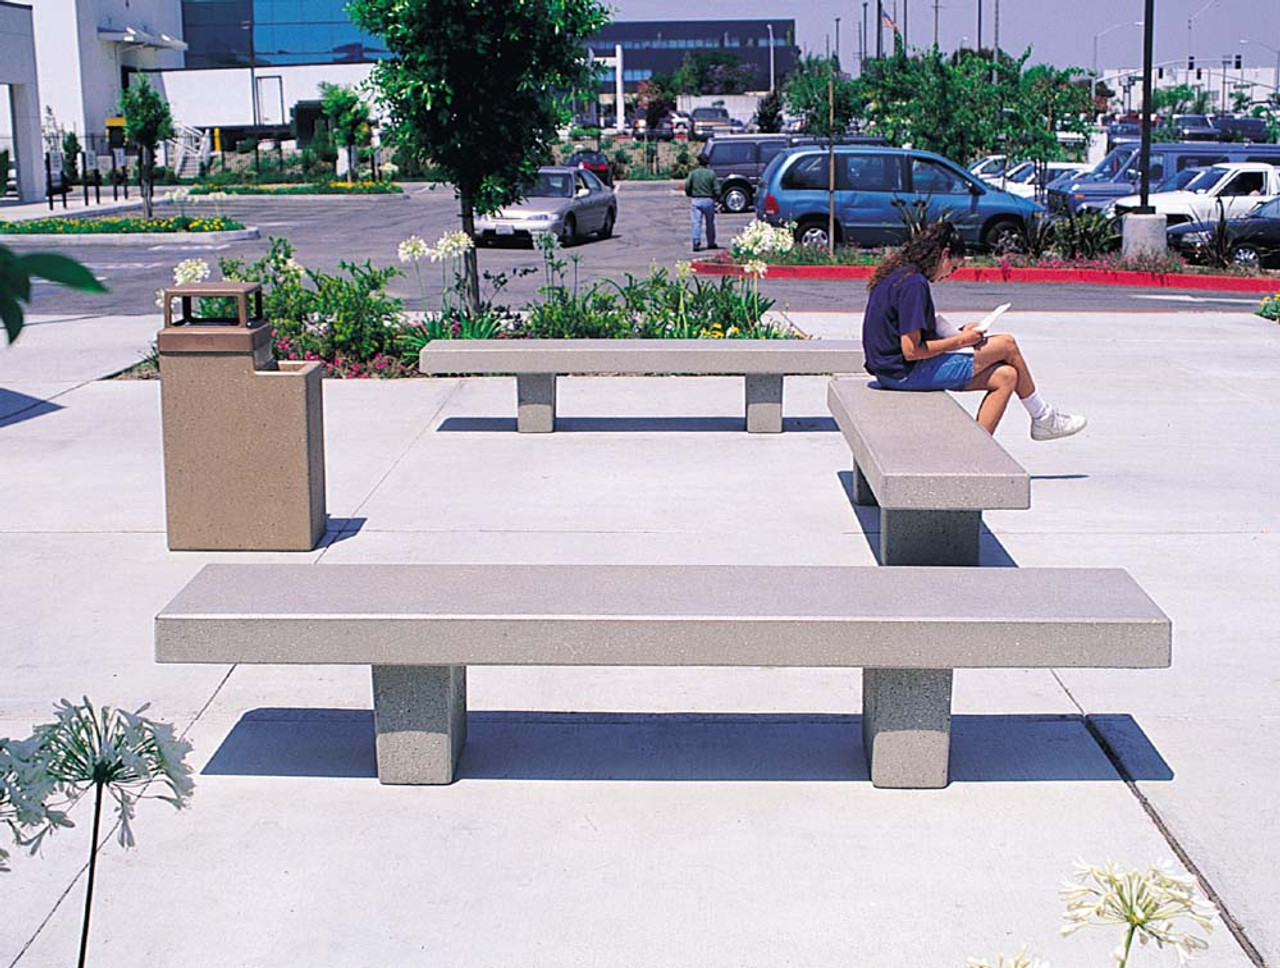 6 Foot Outdoor Concrete University Bench TF5029 on Campus